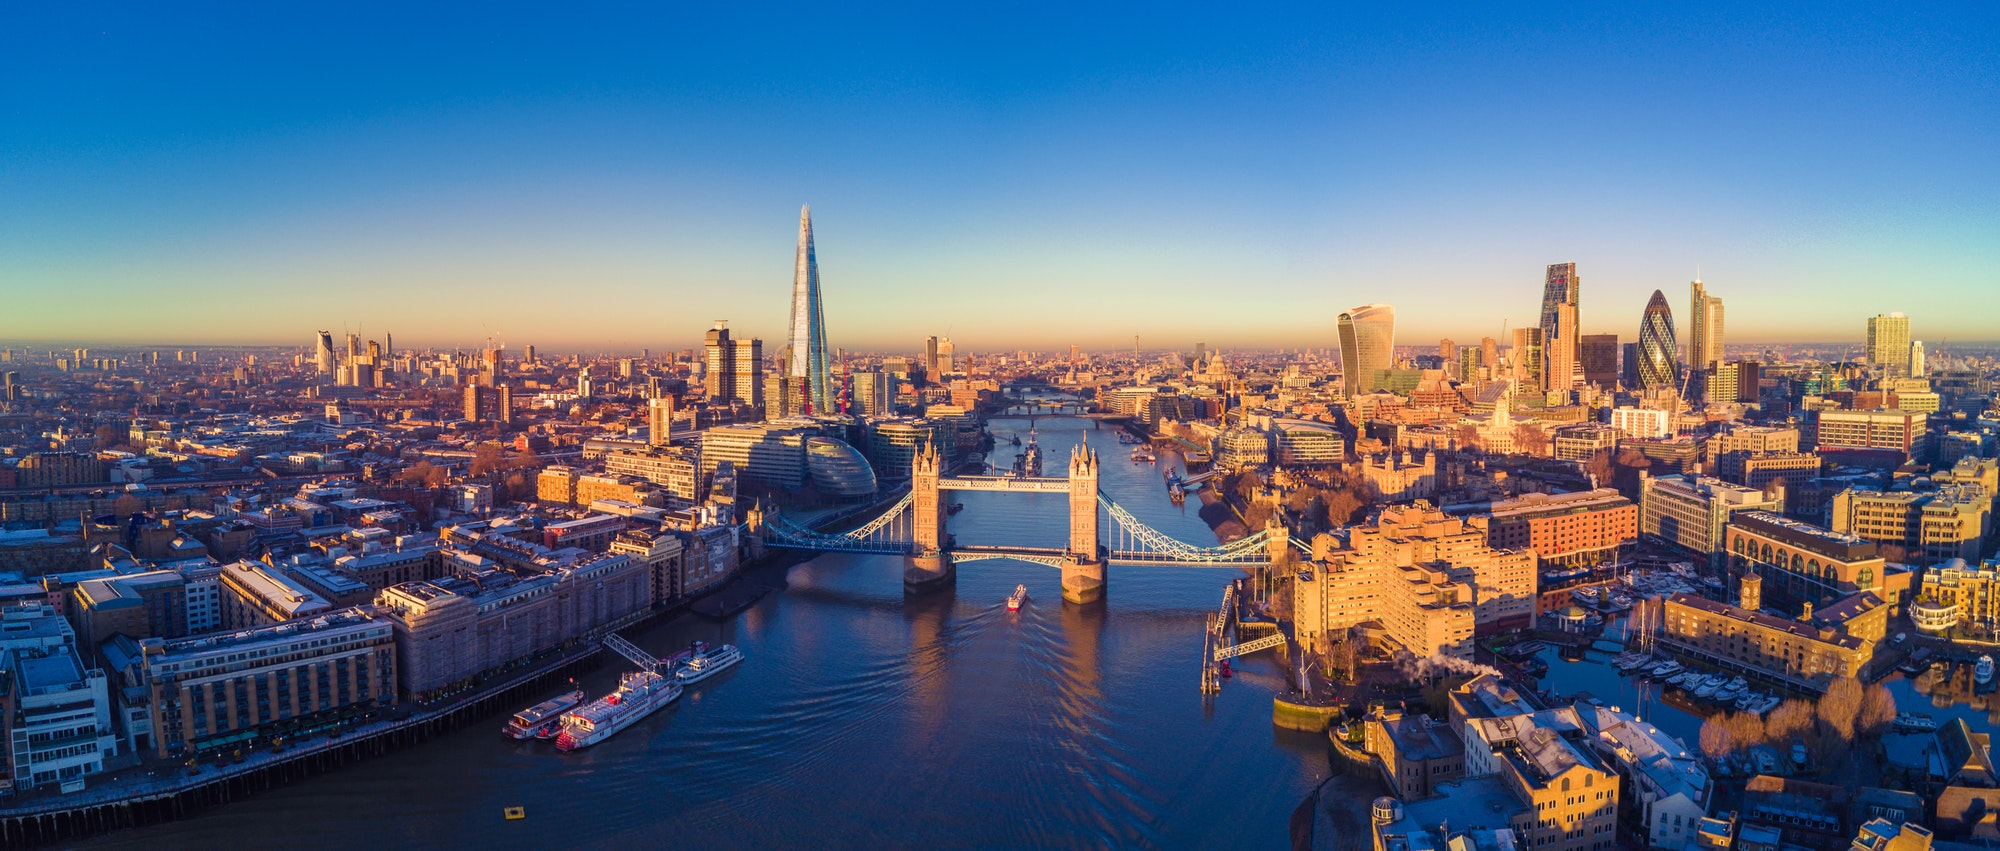 aerial-view-of-london-and-the-river-thames